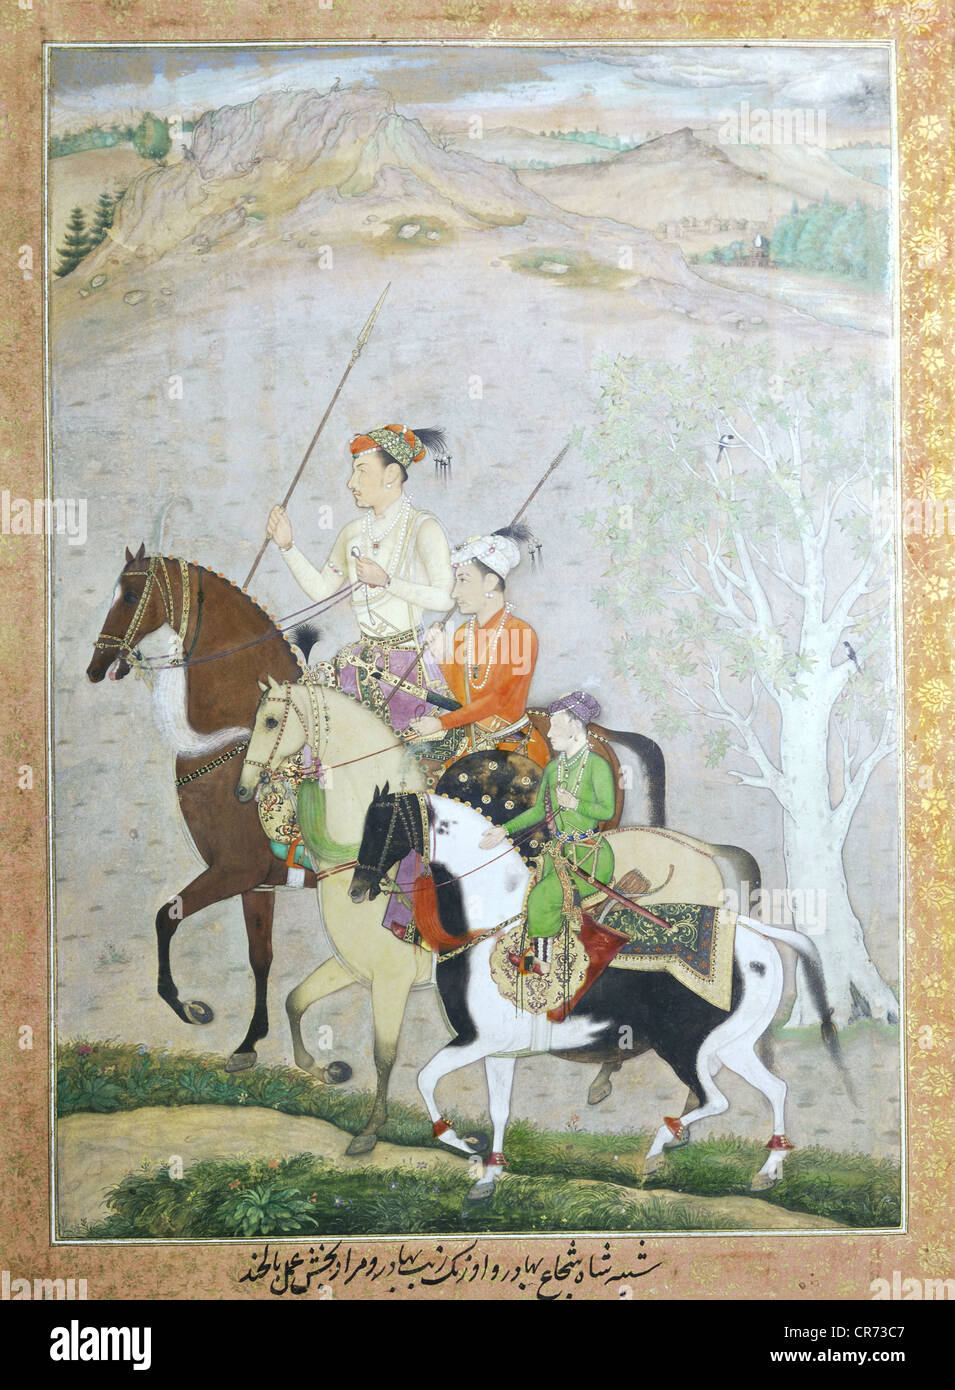 Shah Jahan, 5.1.1592 - 22.1.1666, Mughal Emperor of India 1627 - 1658, his three youngest sons on horseback, with - Stock Image